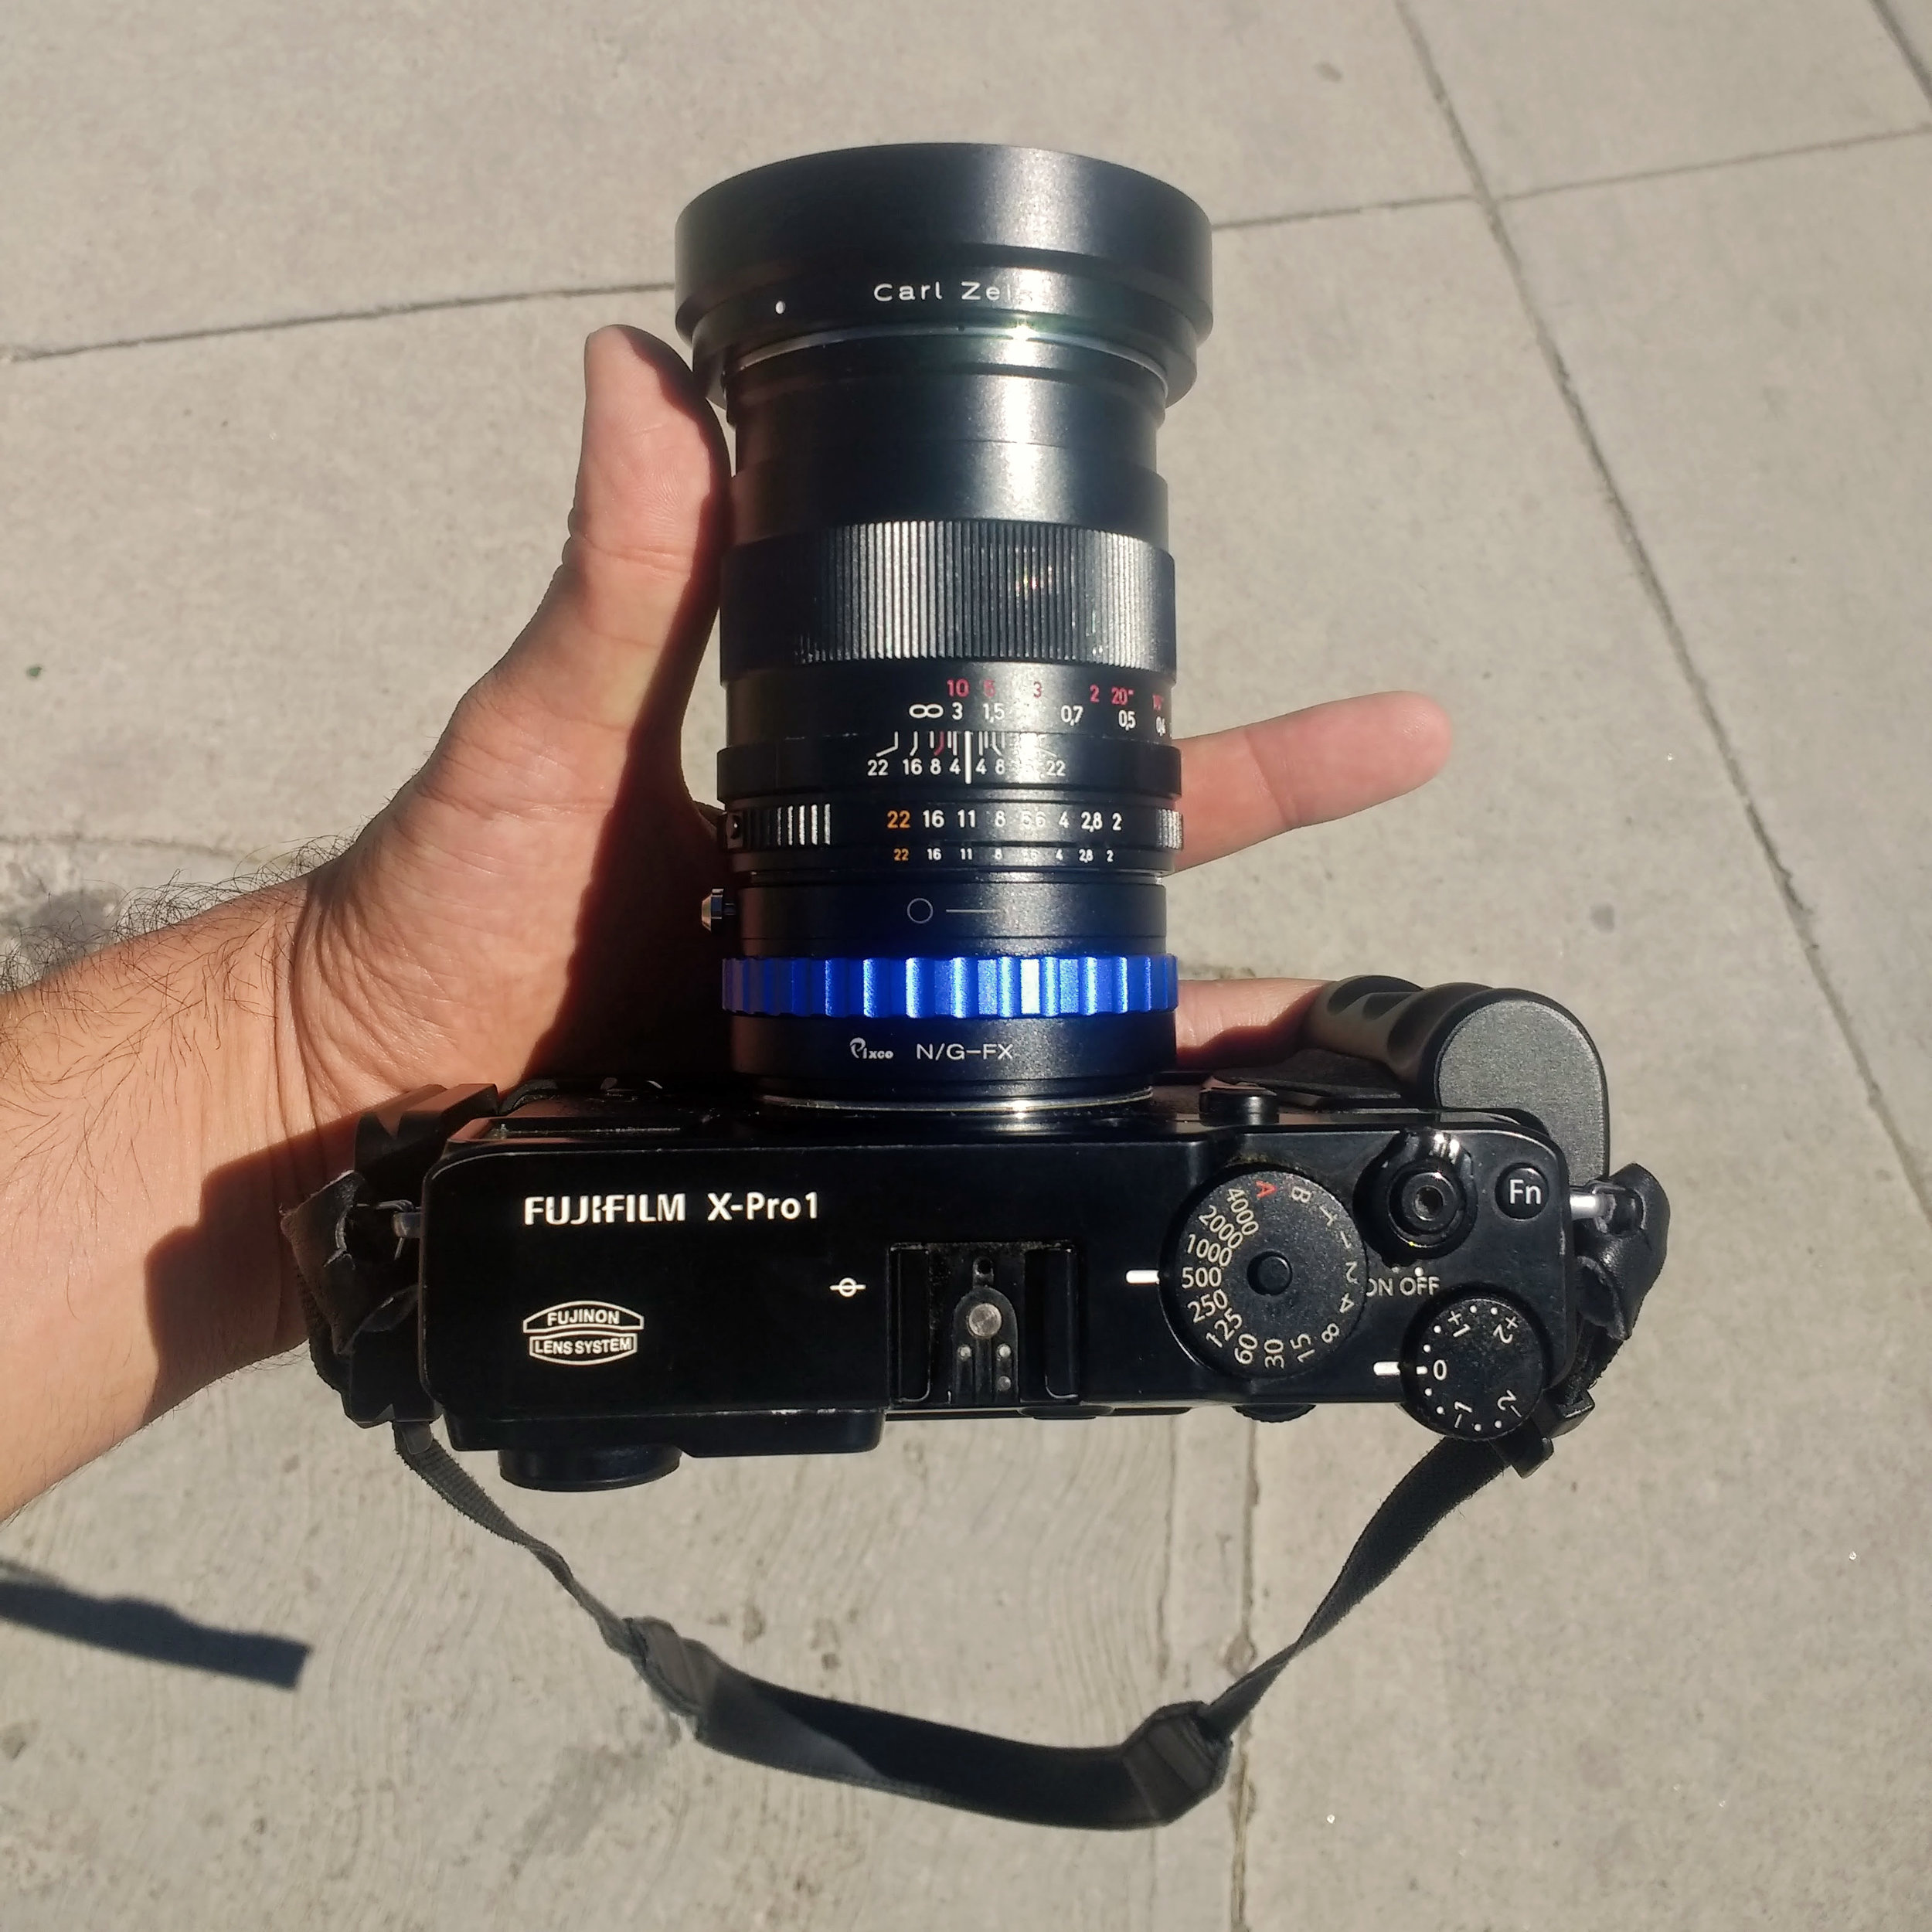 A long lens to compensate for short egos.